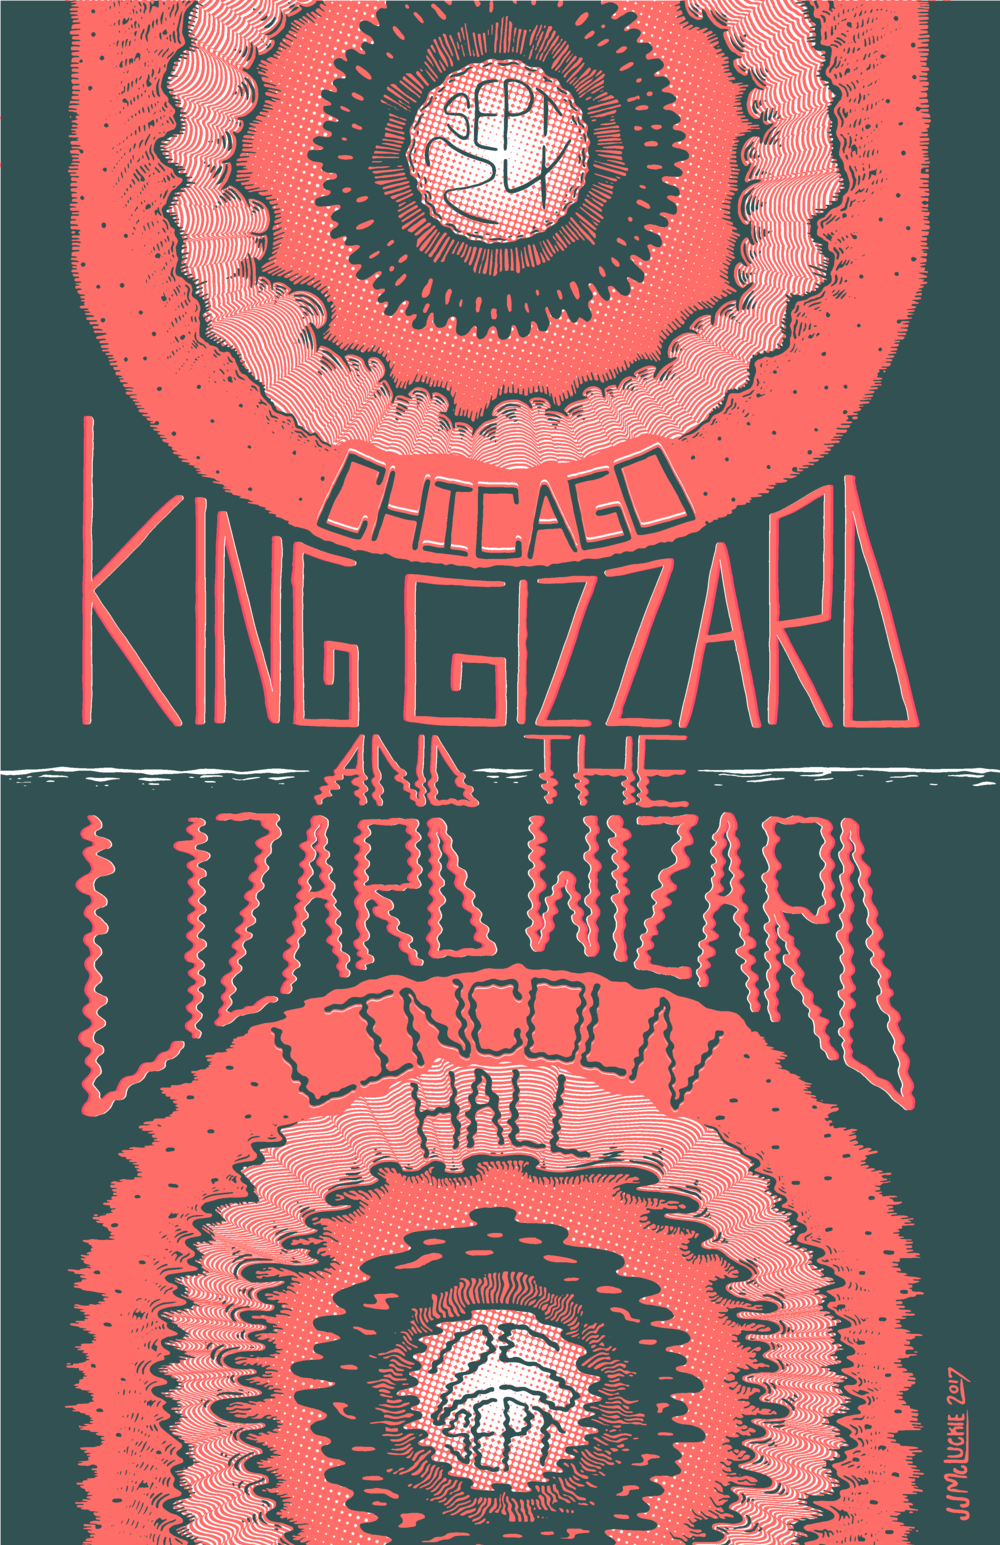 King Gizzard and the Lizard Wizard Color.png